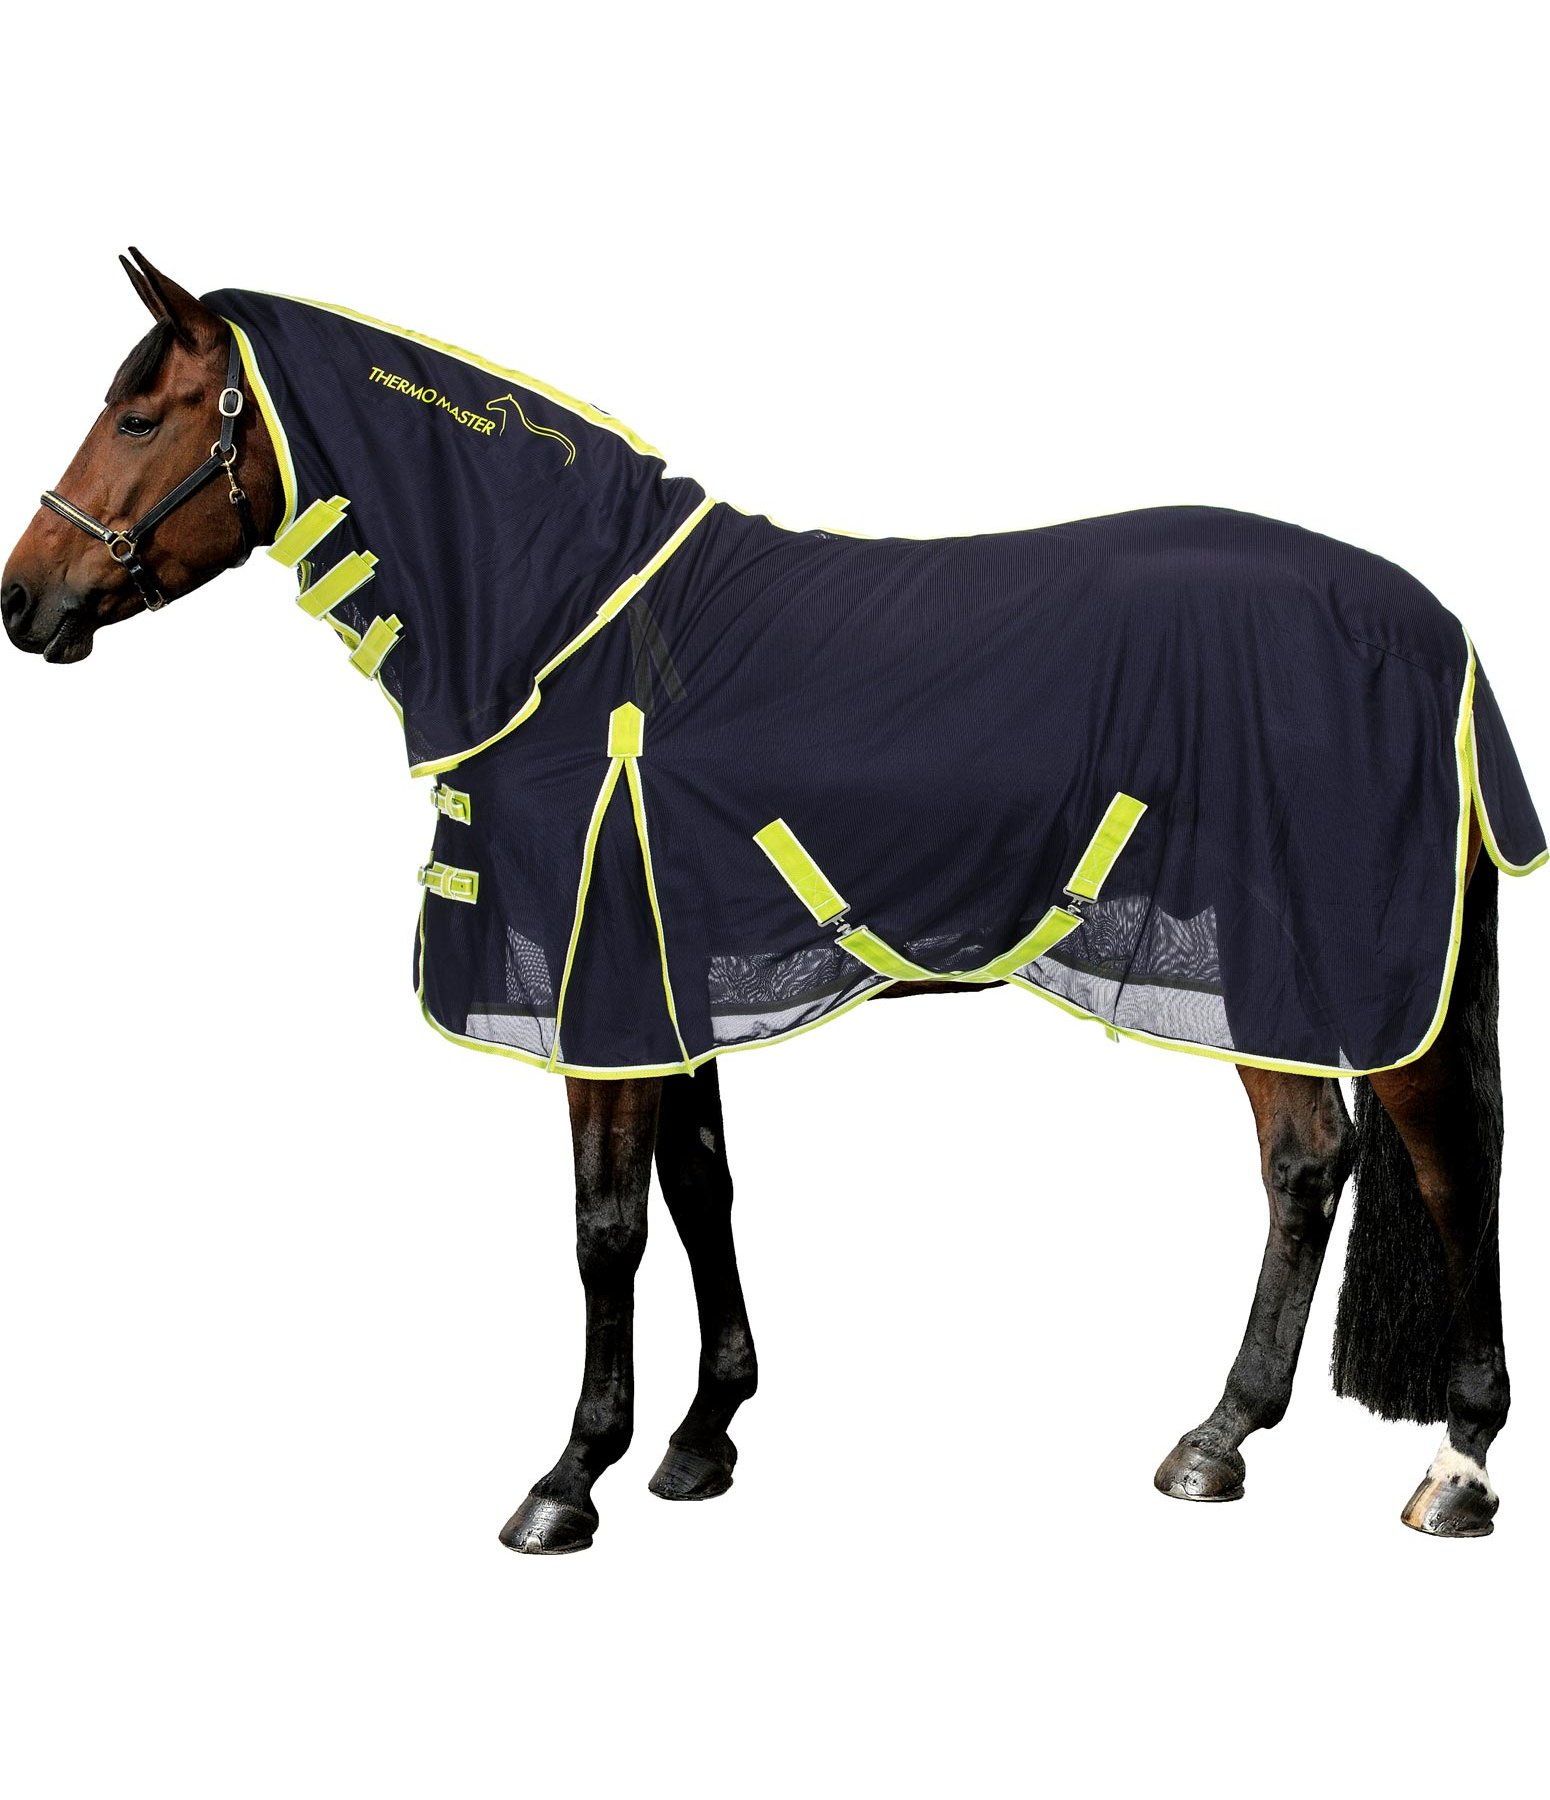 Full Neck Fly Rug with Retractable Neck